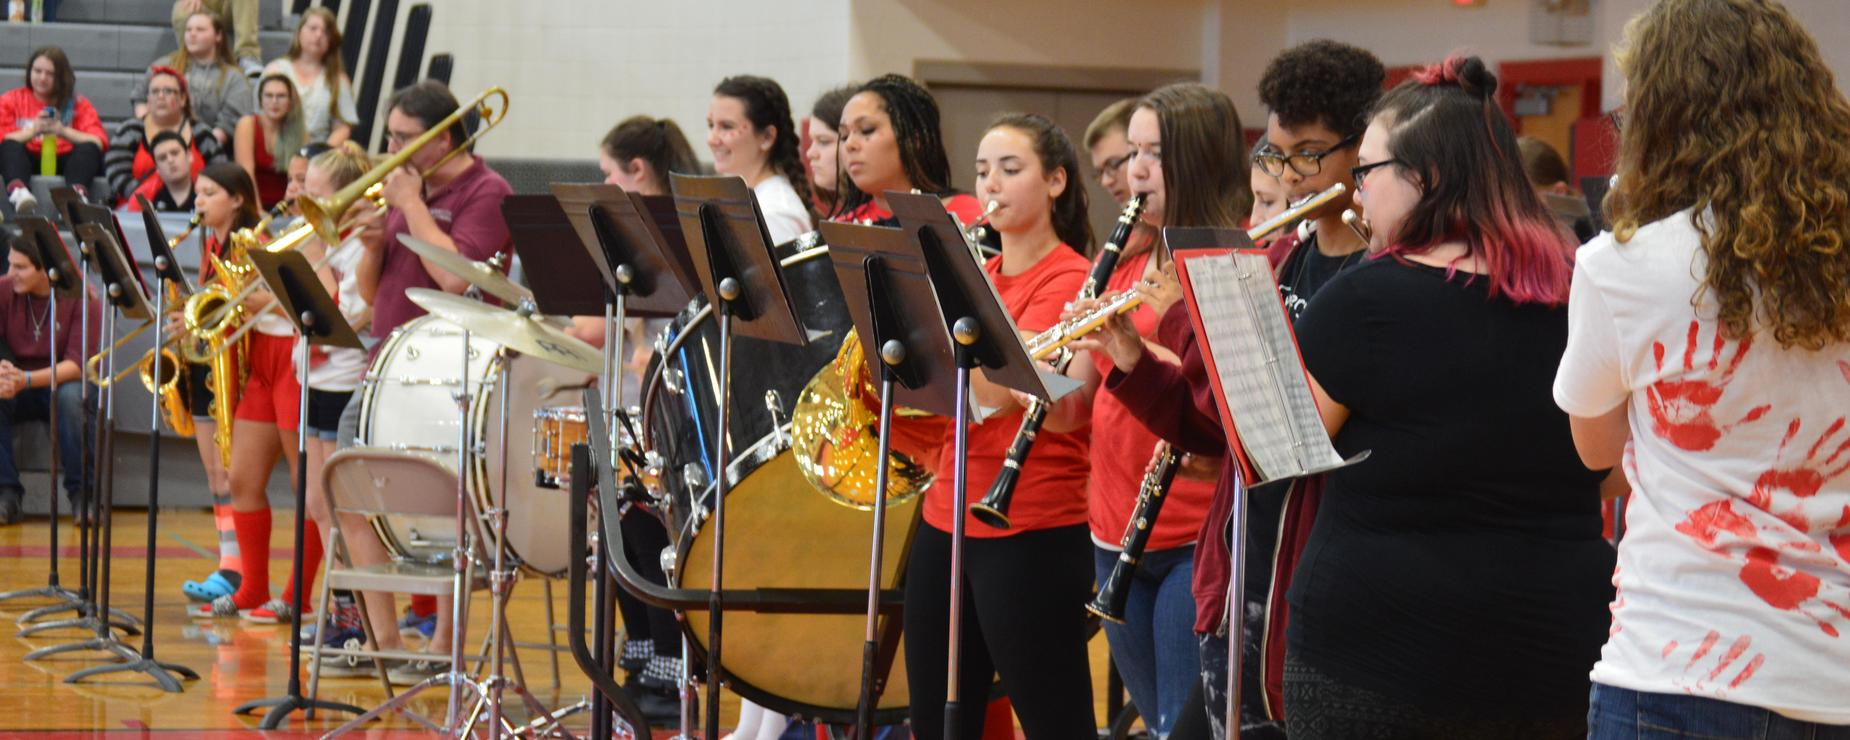 High school band students preforming at a pep rally